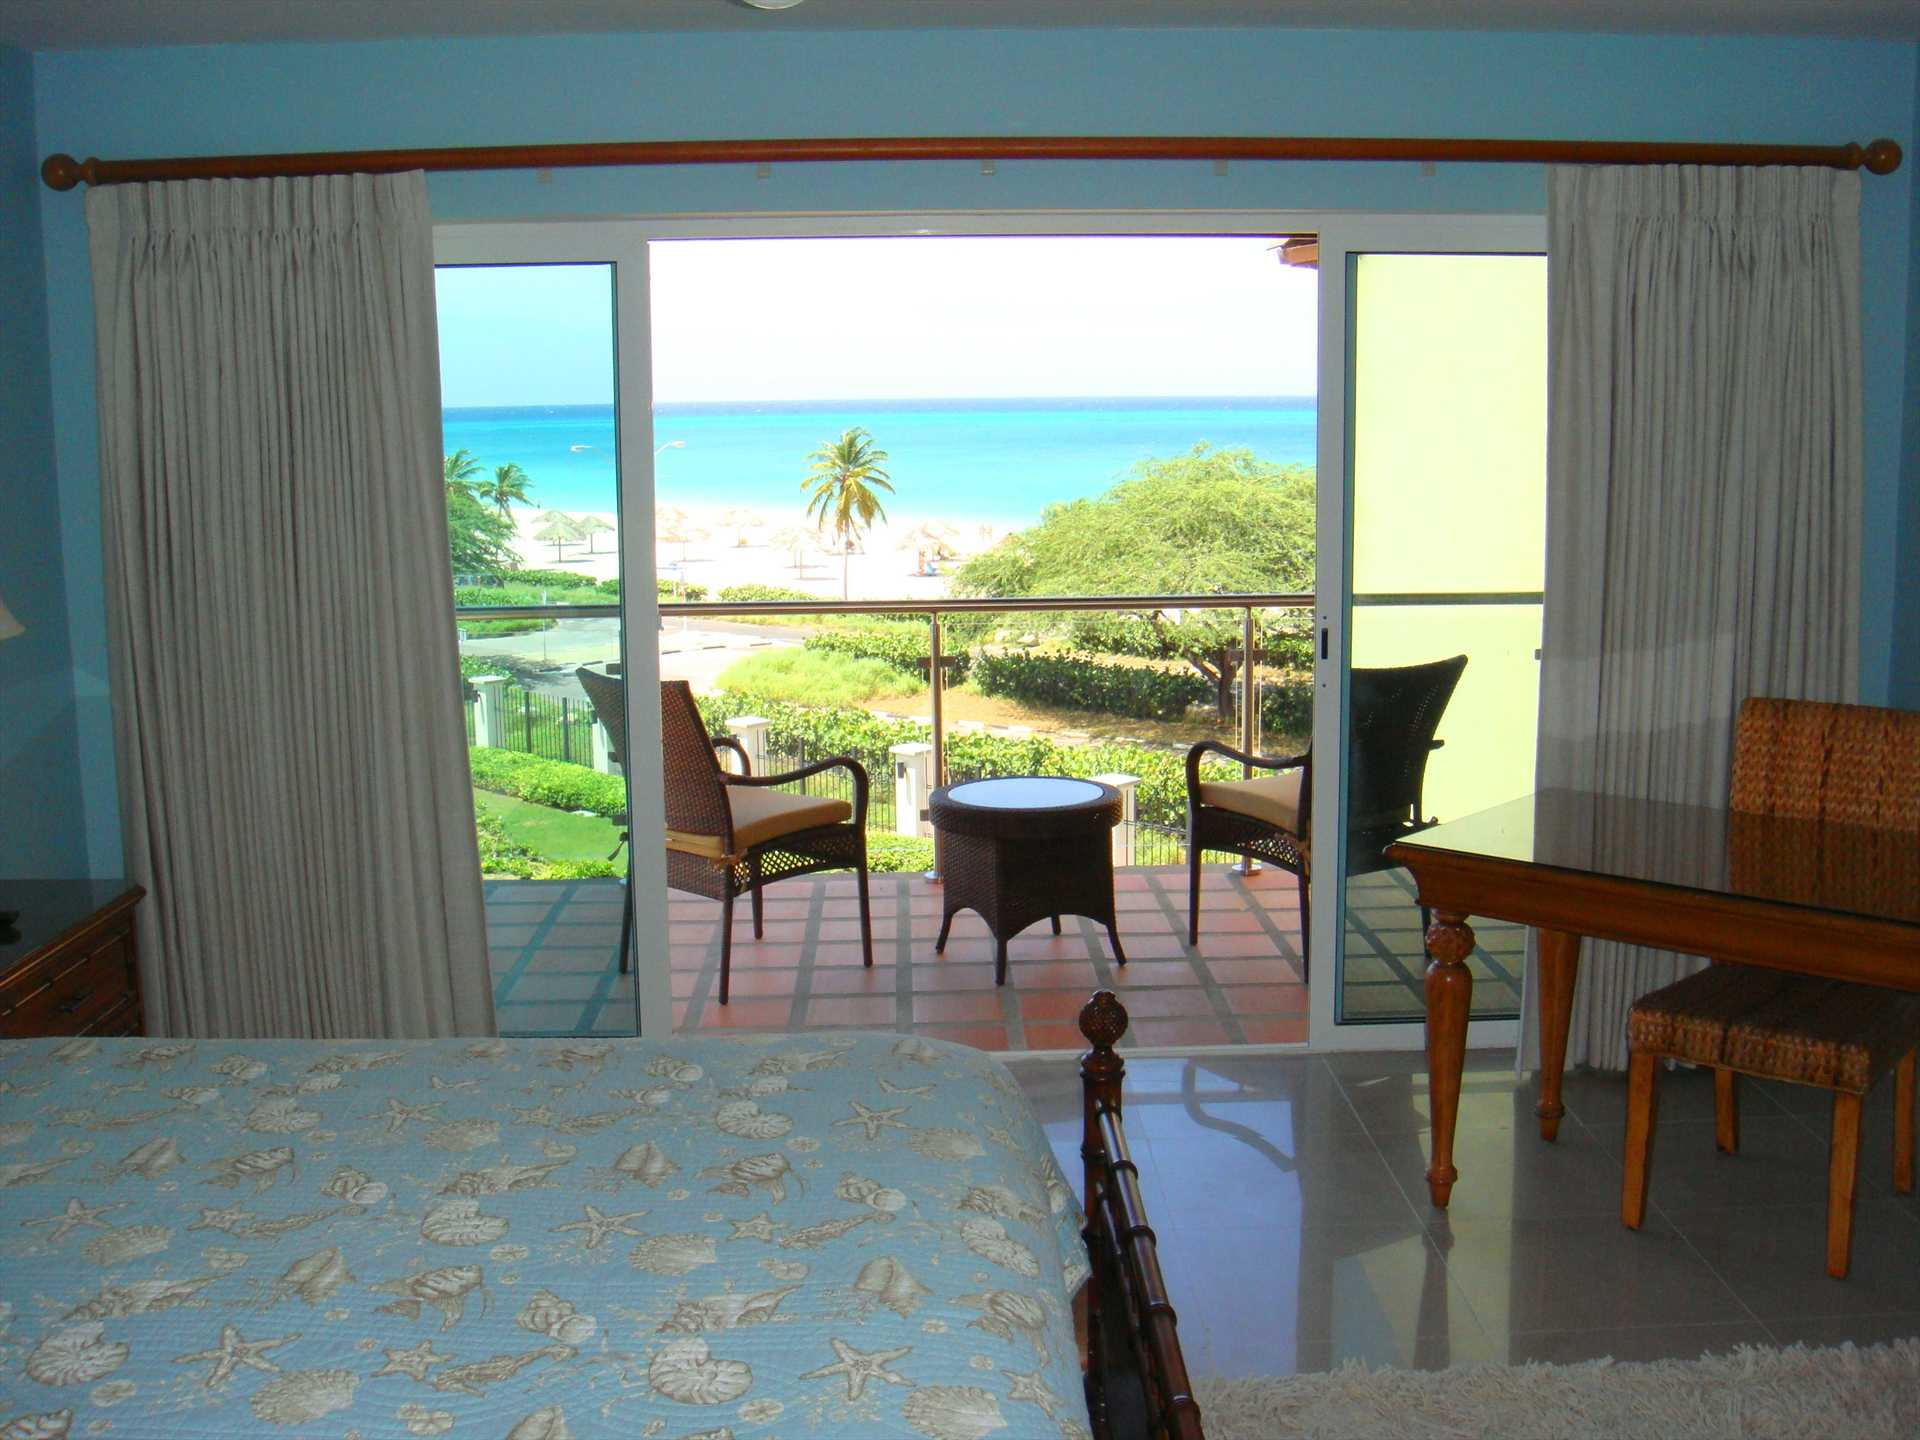 Wake up and savor the ocean view from your bed...